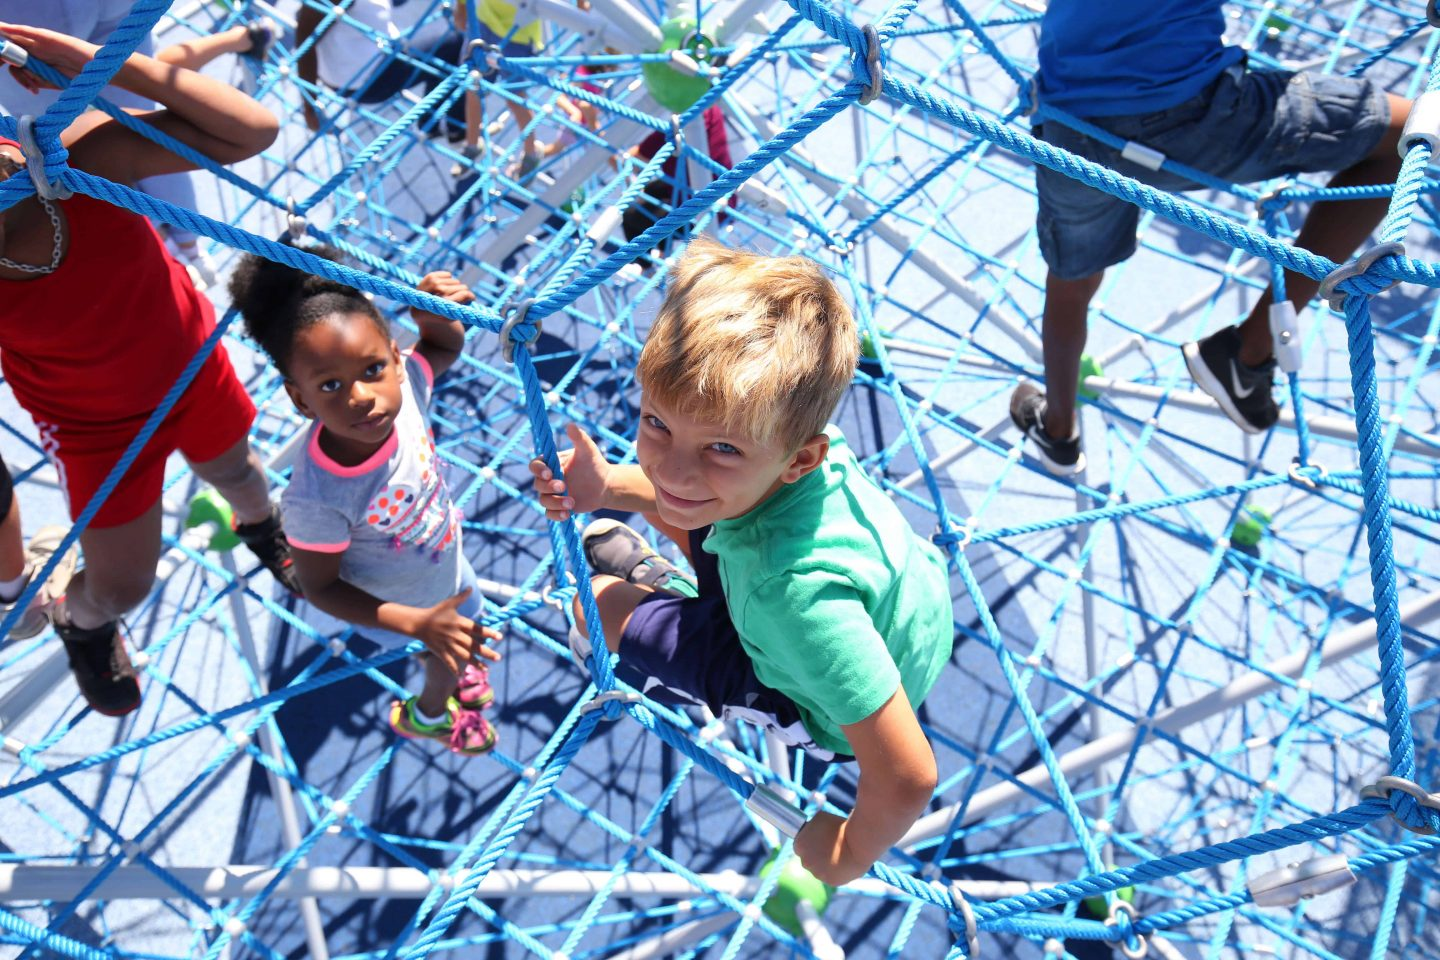 Children in the spatial net of the Neptun XXL of the Berliner Seilfabrik - Play Equipment for Life